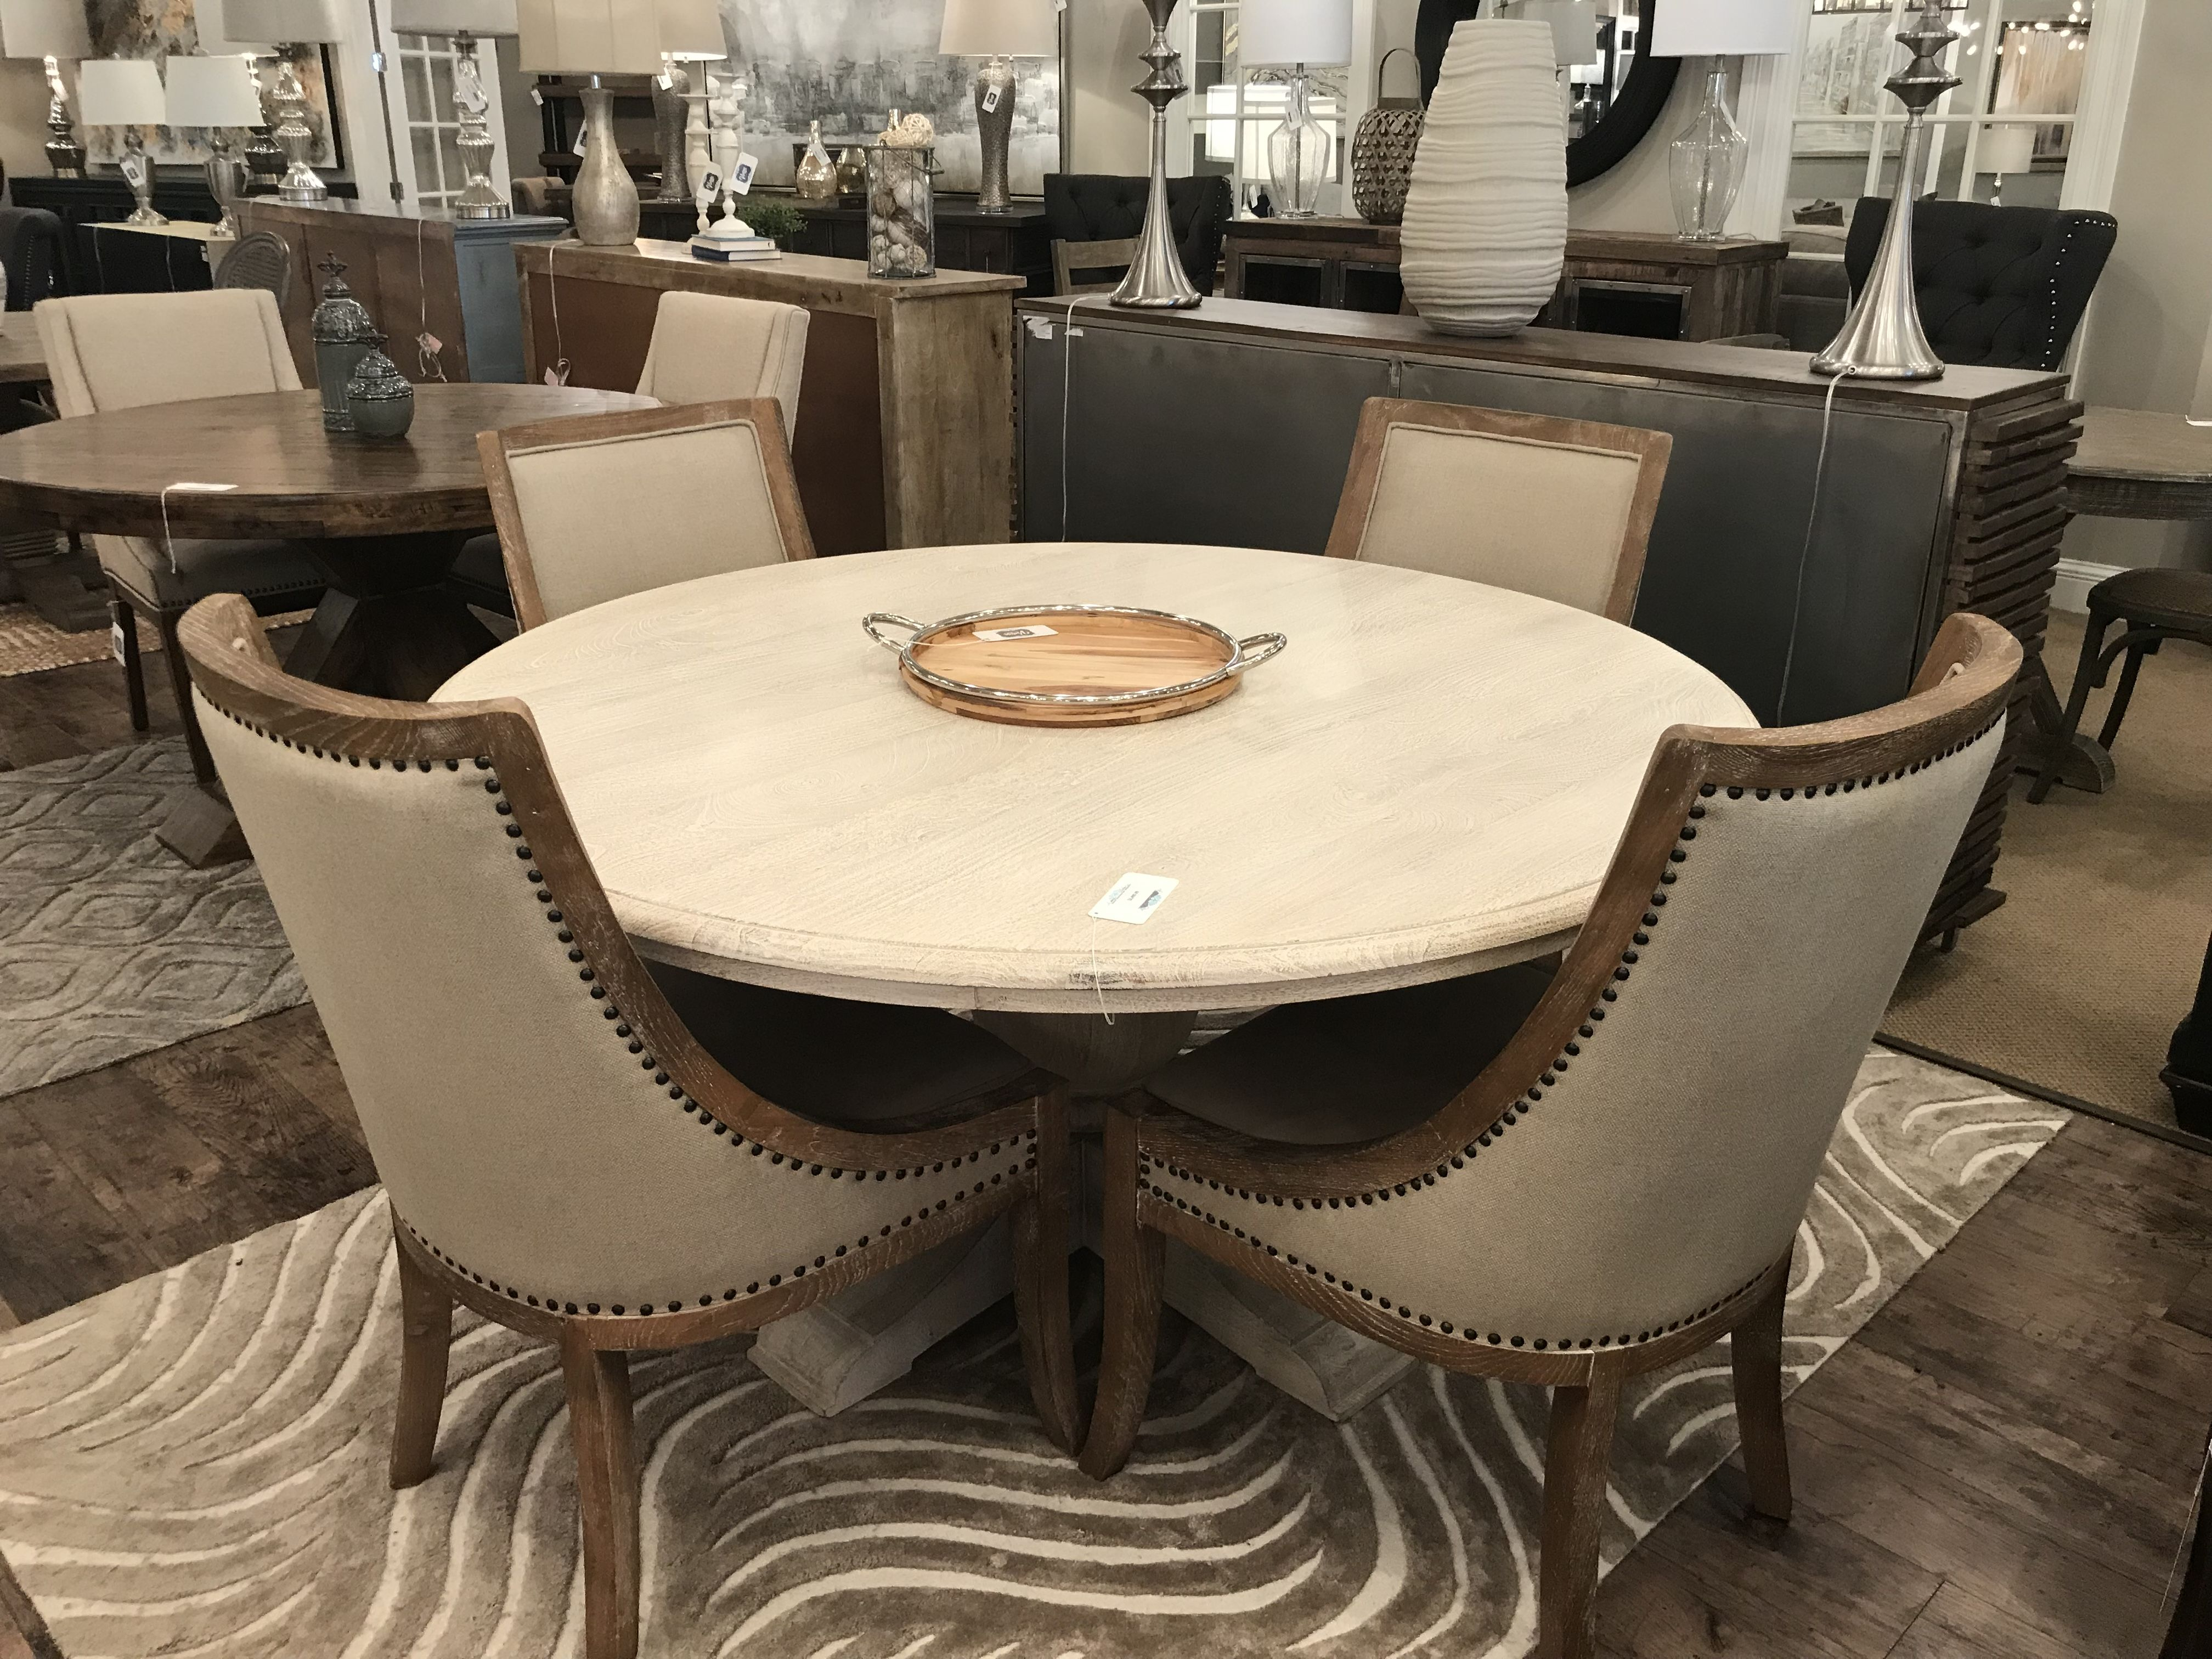 Terme 60 Round Dining Table Antique White 1 299 99 60 Round Dining Table Round Dining Table Dining Table